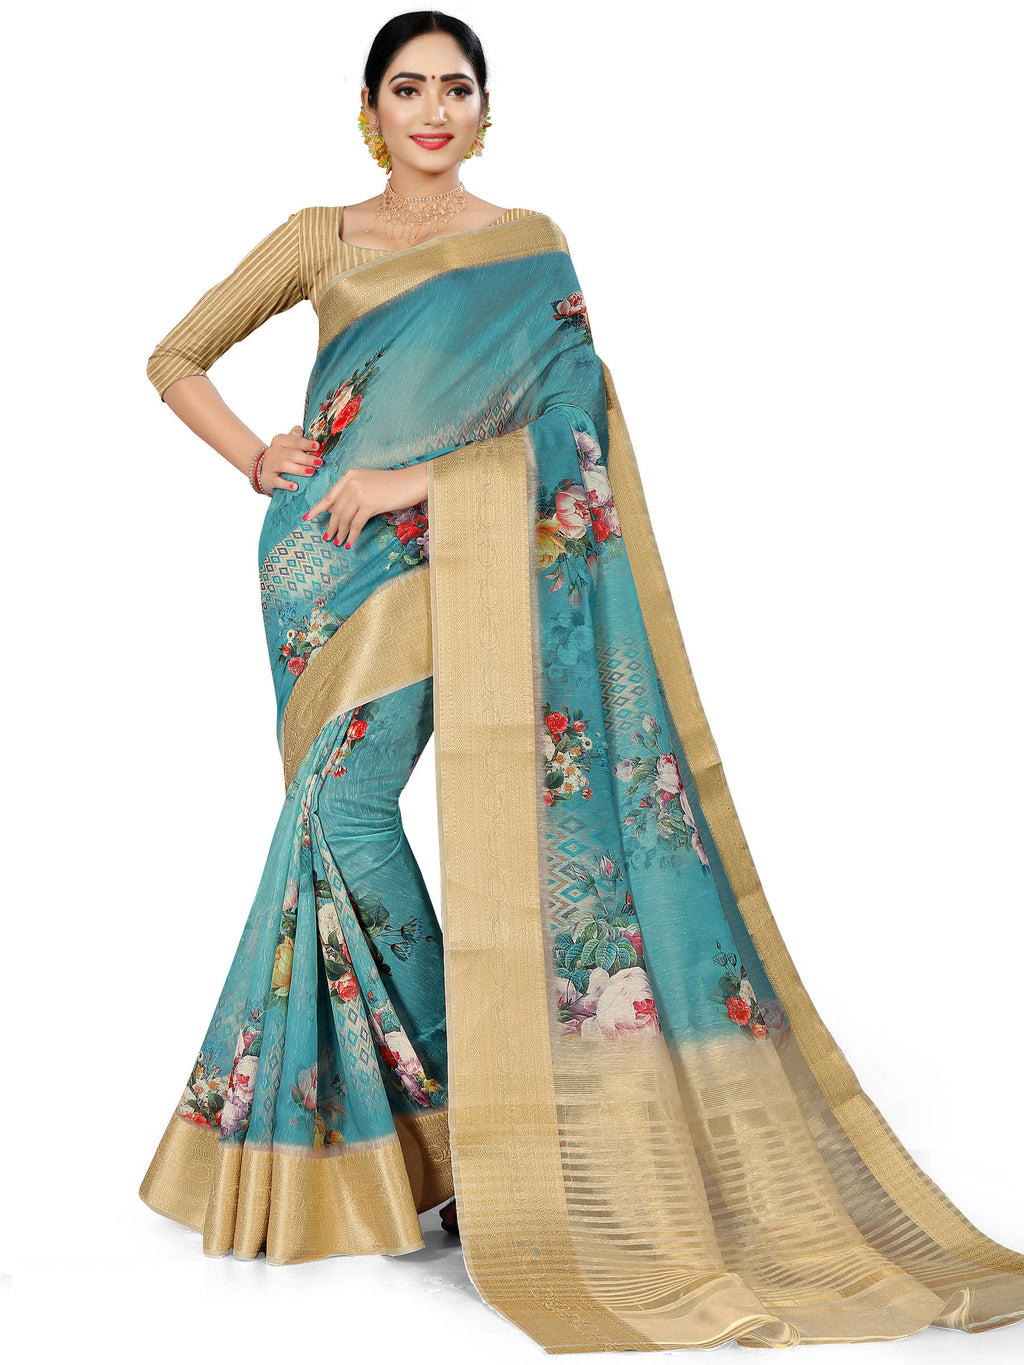 Aqua Blue Color Banarasi Weaving Dola Silk Festive Wear Digital Print Sarees NYF-7758